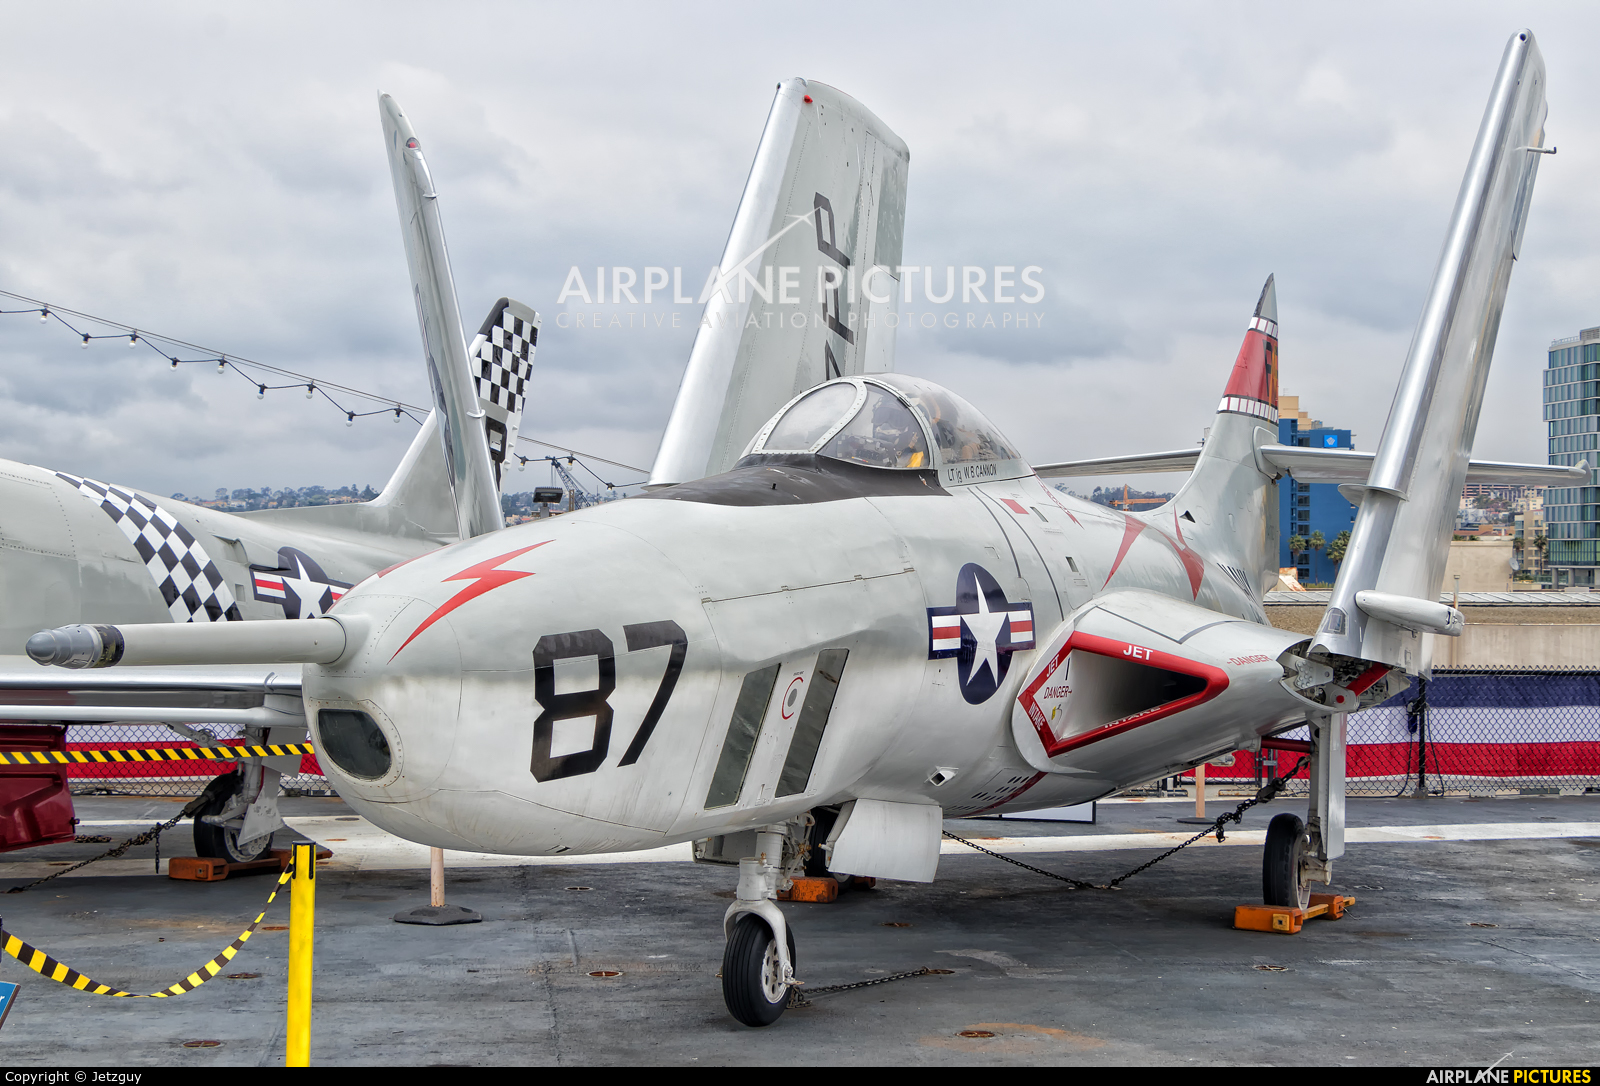 USA - Navy 141702 aircraft at San Diego - USS Midway Museum